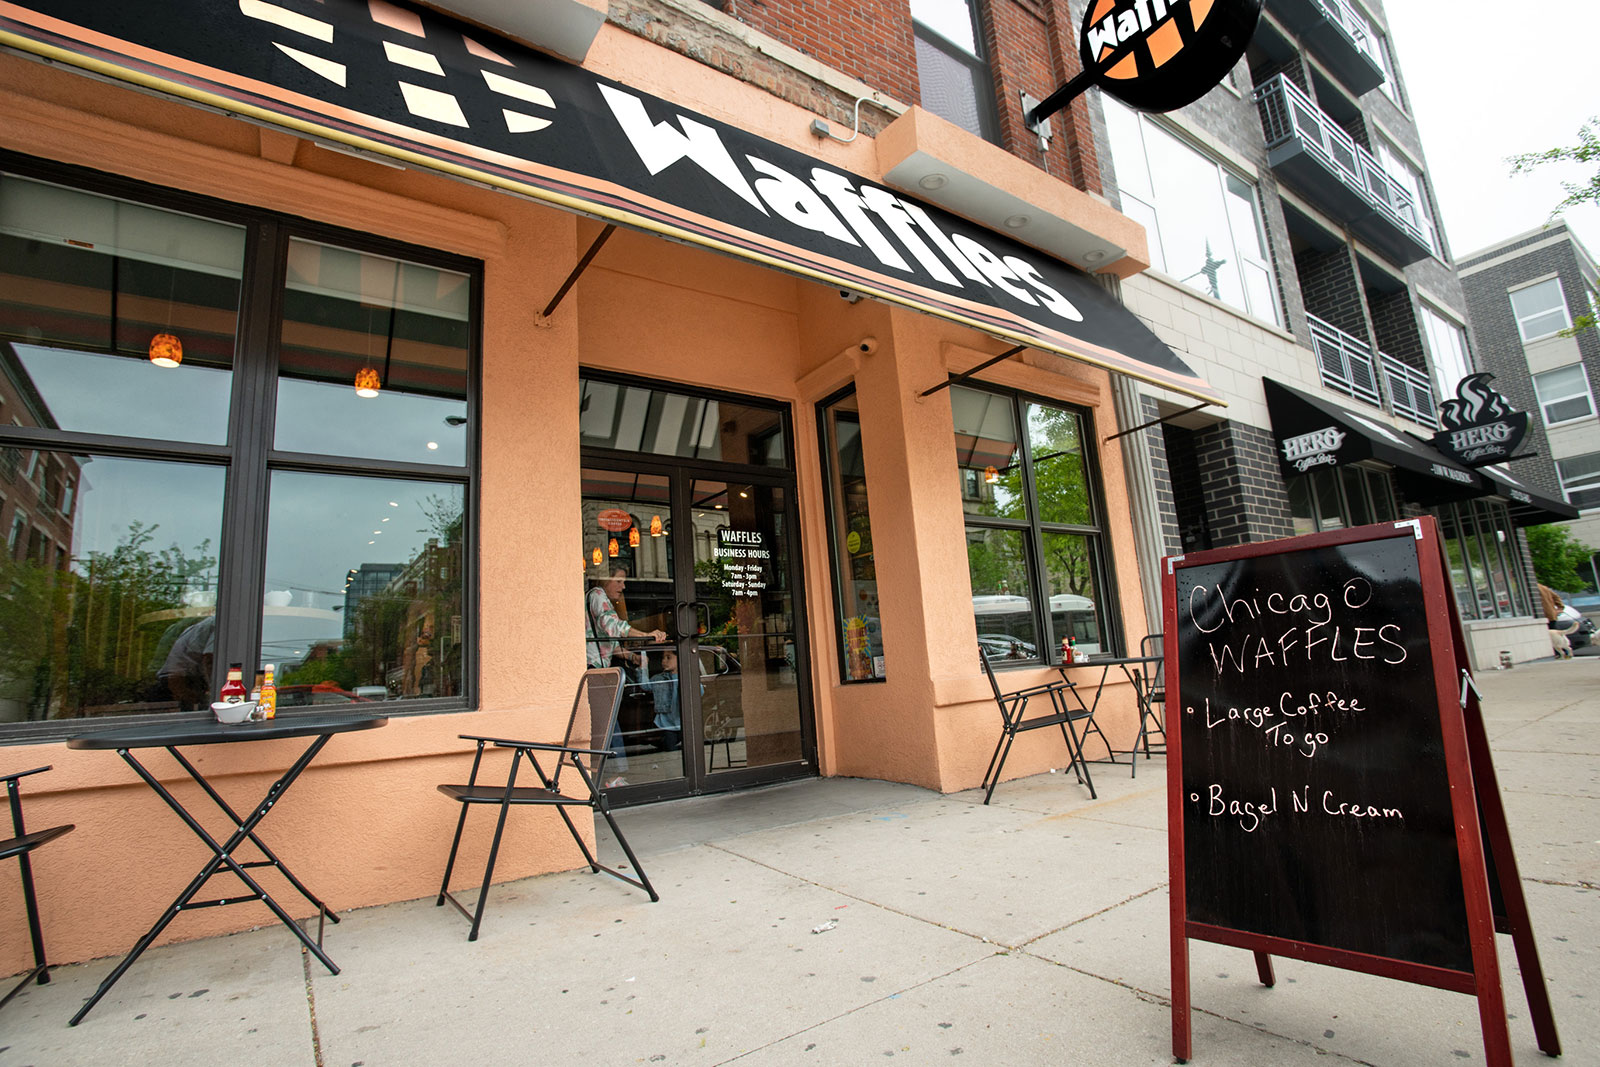 Photo of the West Loop location of Chicago Waffles